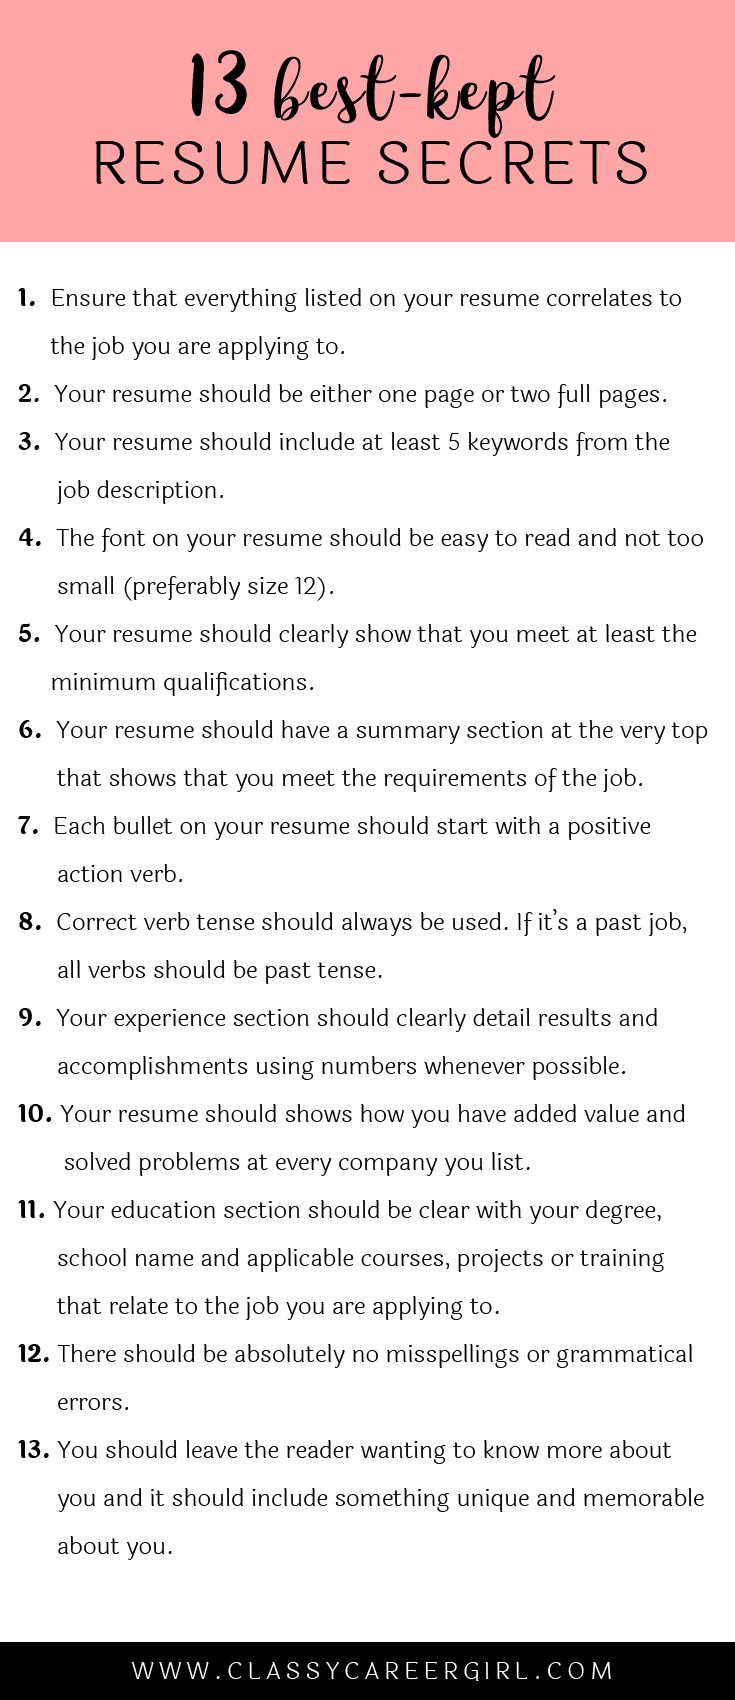 Opposenewapstandardsus  Sweet  Ideas About Resume On Pinterest  Cv Format Resume Cv And  With Luxury Some Hiring Managers Will Toss Your Resume Out If You Dont Know These  With Delectable Construction Resume Also What To Include In A Resume In Addition Good Resume Objectives And Font For Resume As Well As Warehouse Resume Additionally Rn Resume From Pinterestcom With Opposenewapstandardsus  Luxury  Ideas About Resume On Pinterest  Cv Format Resume Cv And  With Delectable Some Hiring Managers Will Toss Your Resume Out If You Dont Know These  And Sweet Construction Resume Also What To Include In A Resume In Addition Good Resume Objectives From Pinterestcom